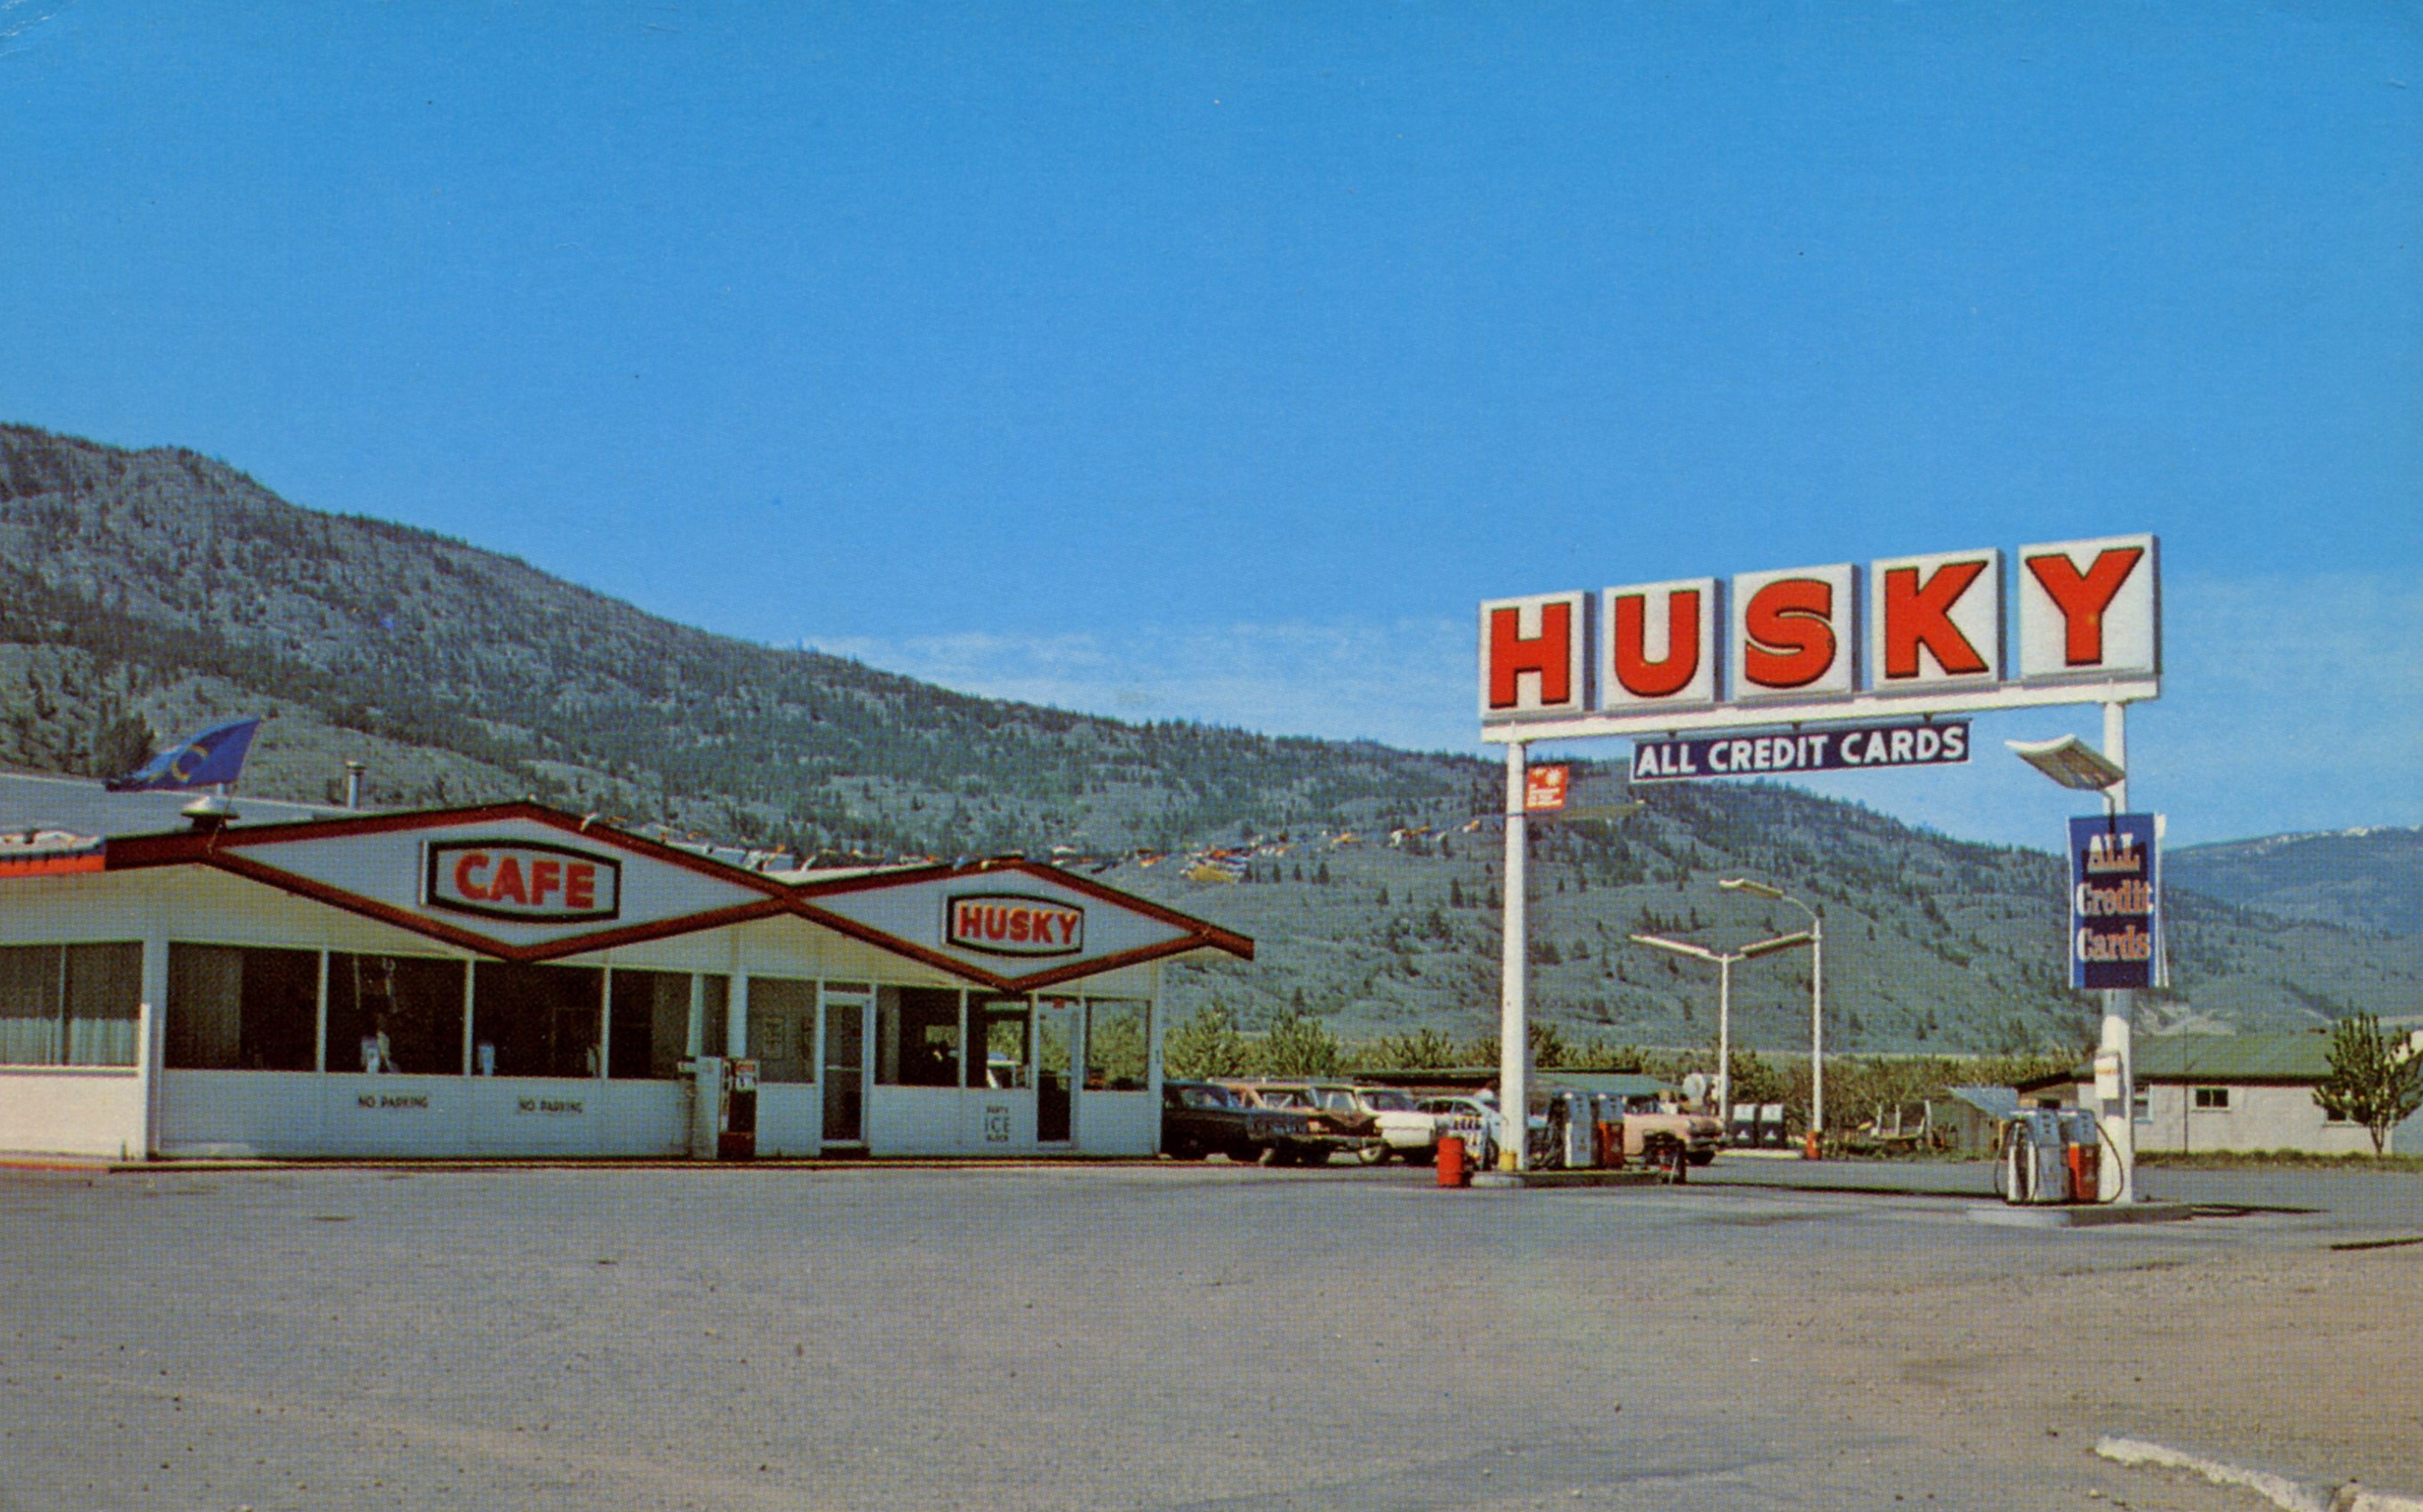 Chuck's Husky Travelcentre - 9206 97th Street, Osoyoos, British Columbia, Canada - 1960s